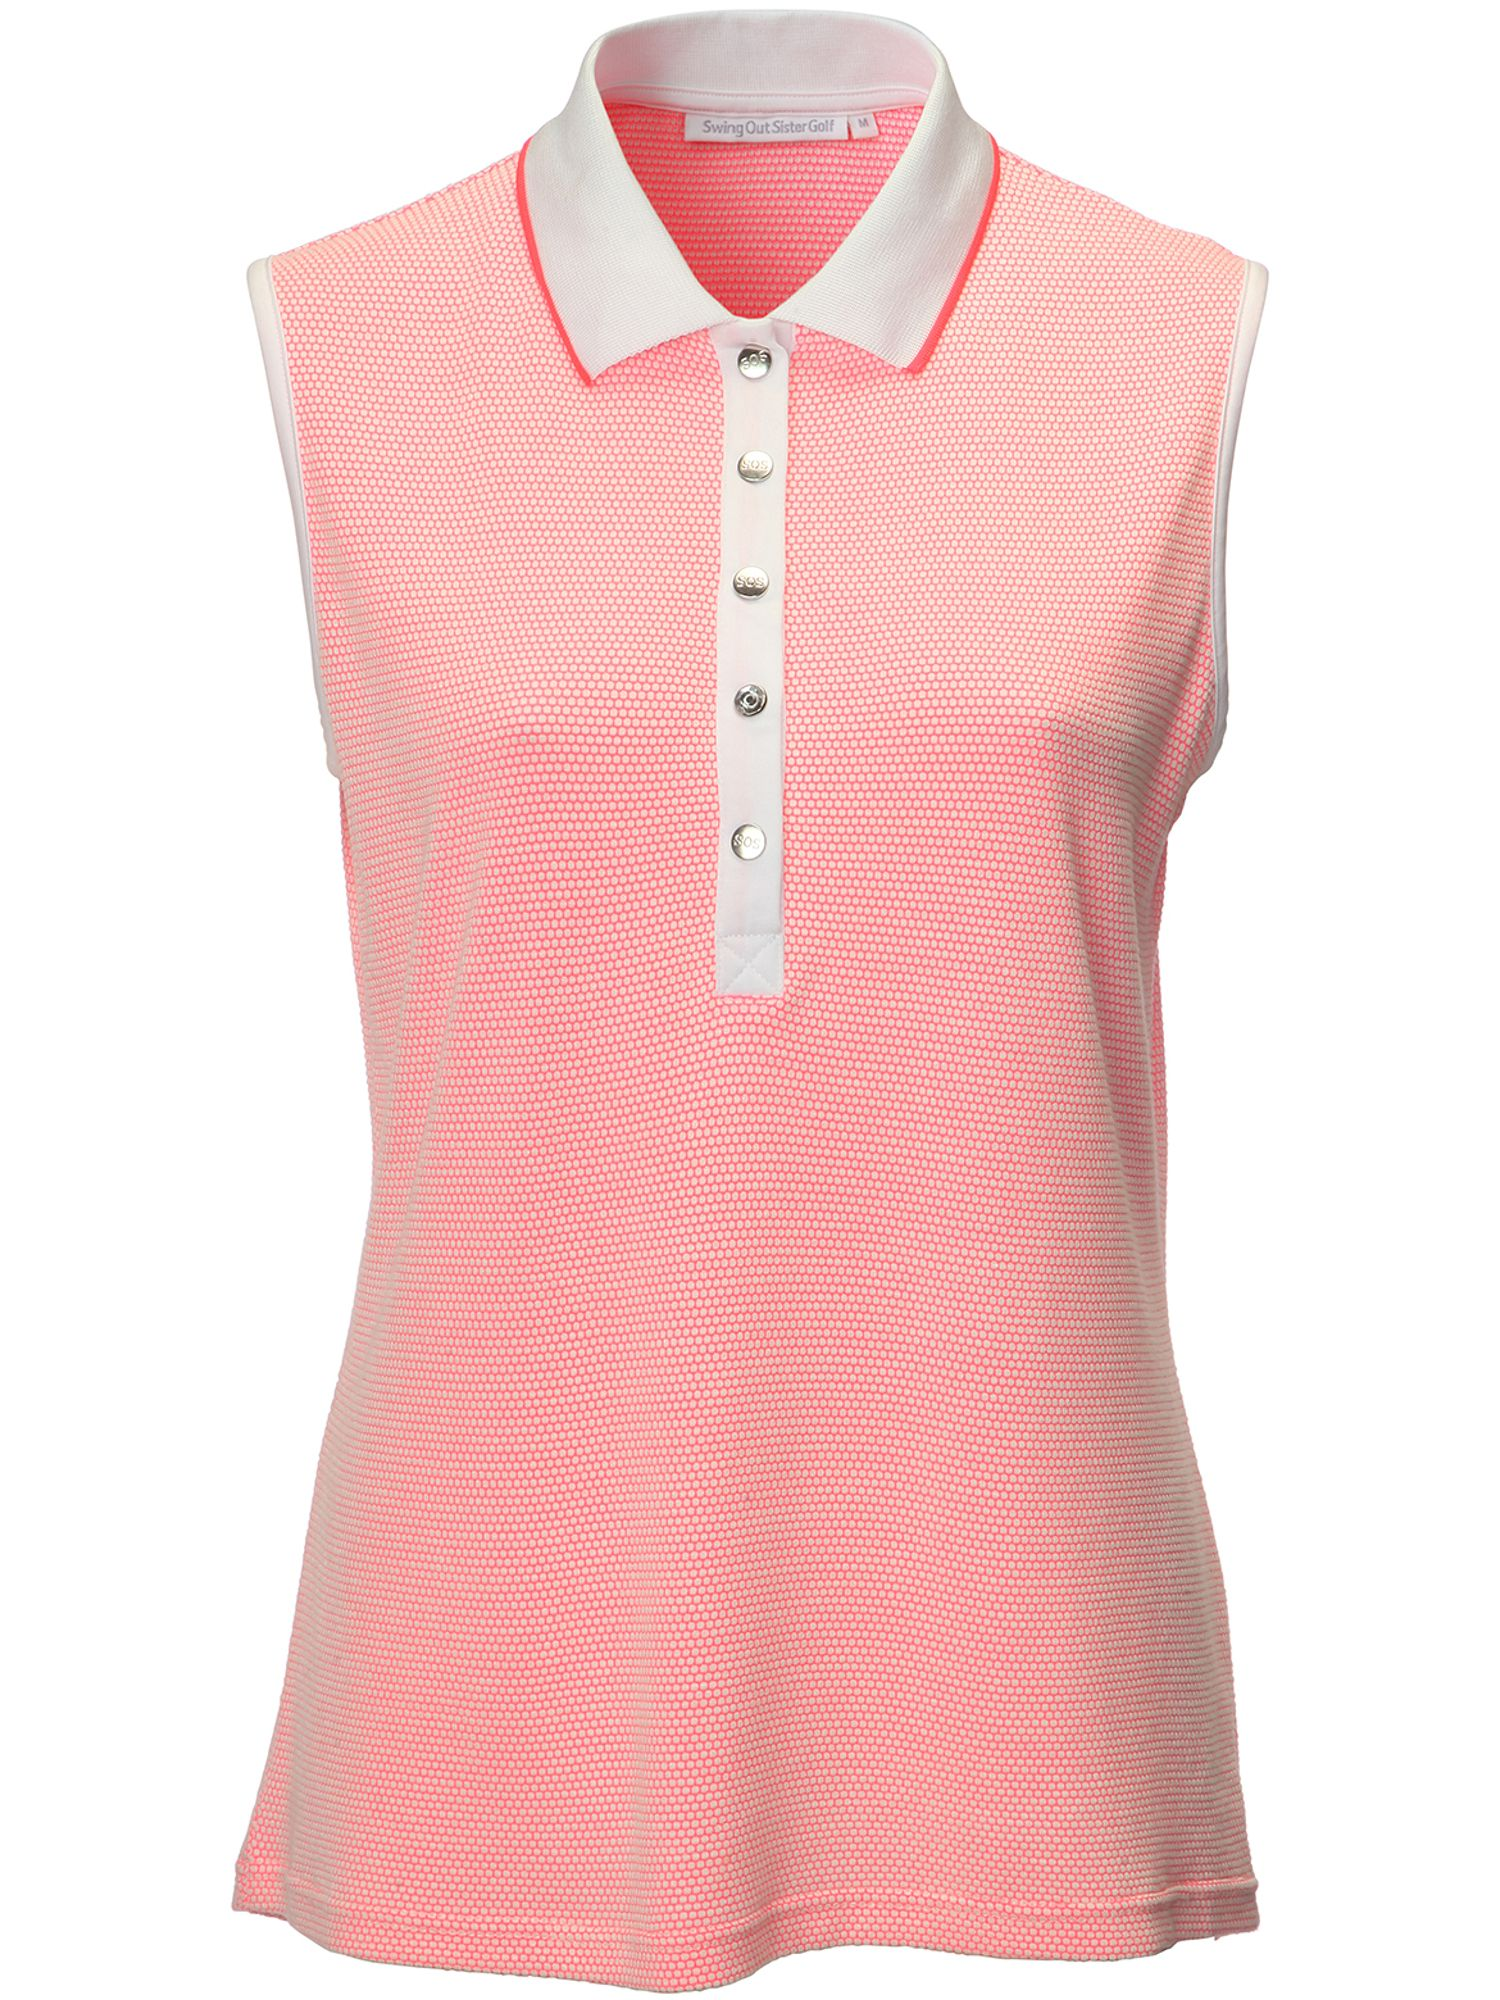 Swing Out Sister Tina Woffle Sleeveless Shirt, Pink